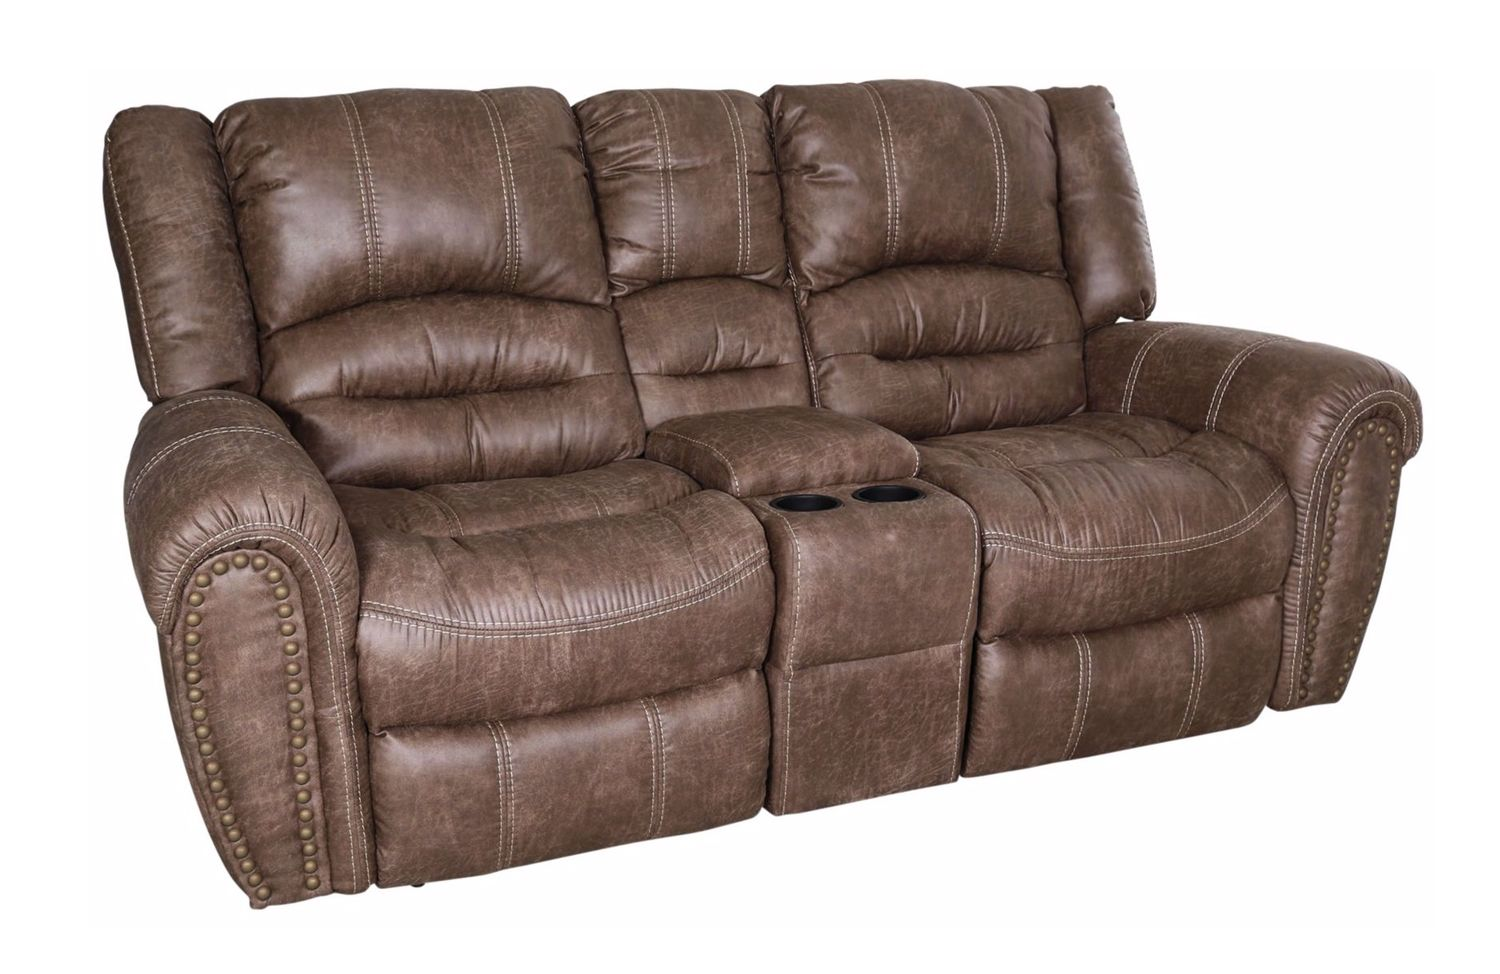 Surprising Flexsteel Downtown Fabric Power Reclining Loveseat With Console Caraccident5 Cool Chair Designs And Ideas Caraccident5Info